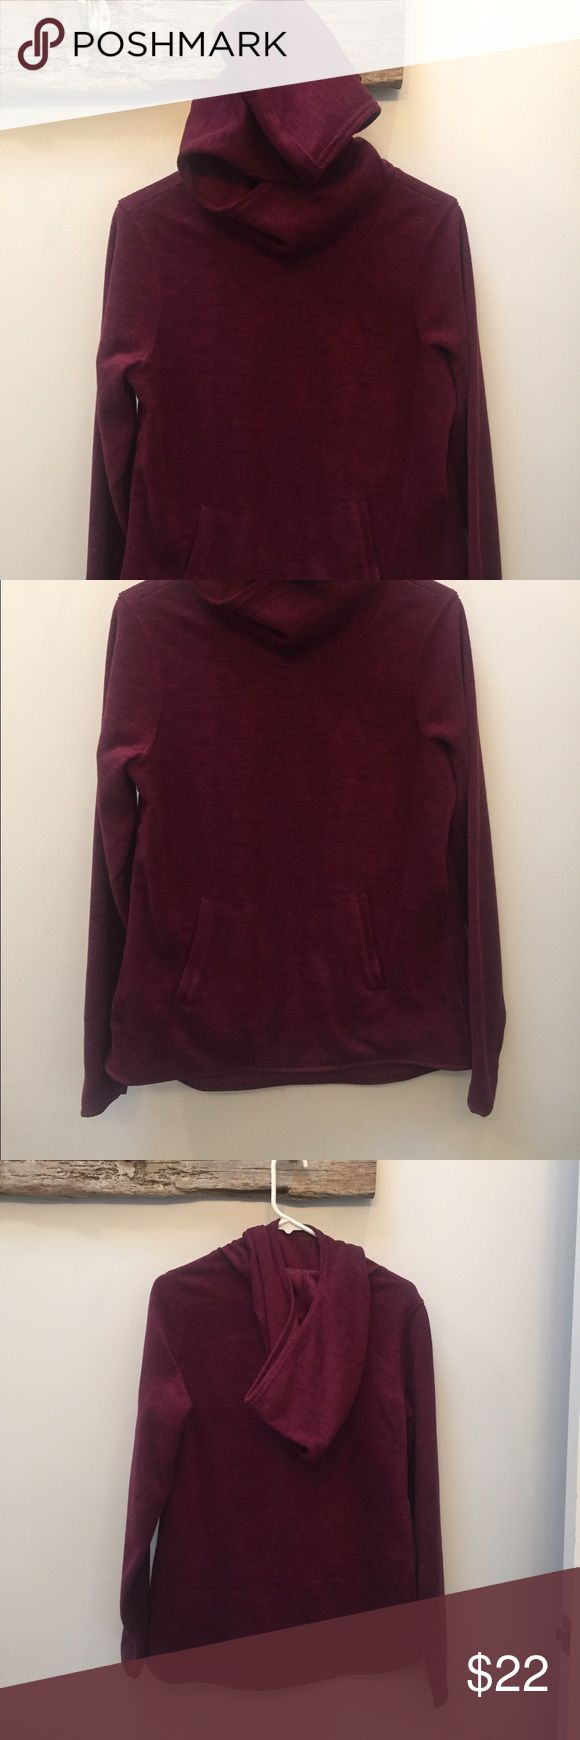 Old Navy Fleece Pullover Maroon Old Navy Fleece Pull Over Size S/P never worn Old Navy Tops Sweatshirts & Hoodies